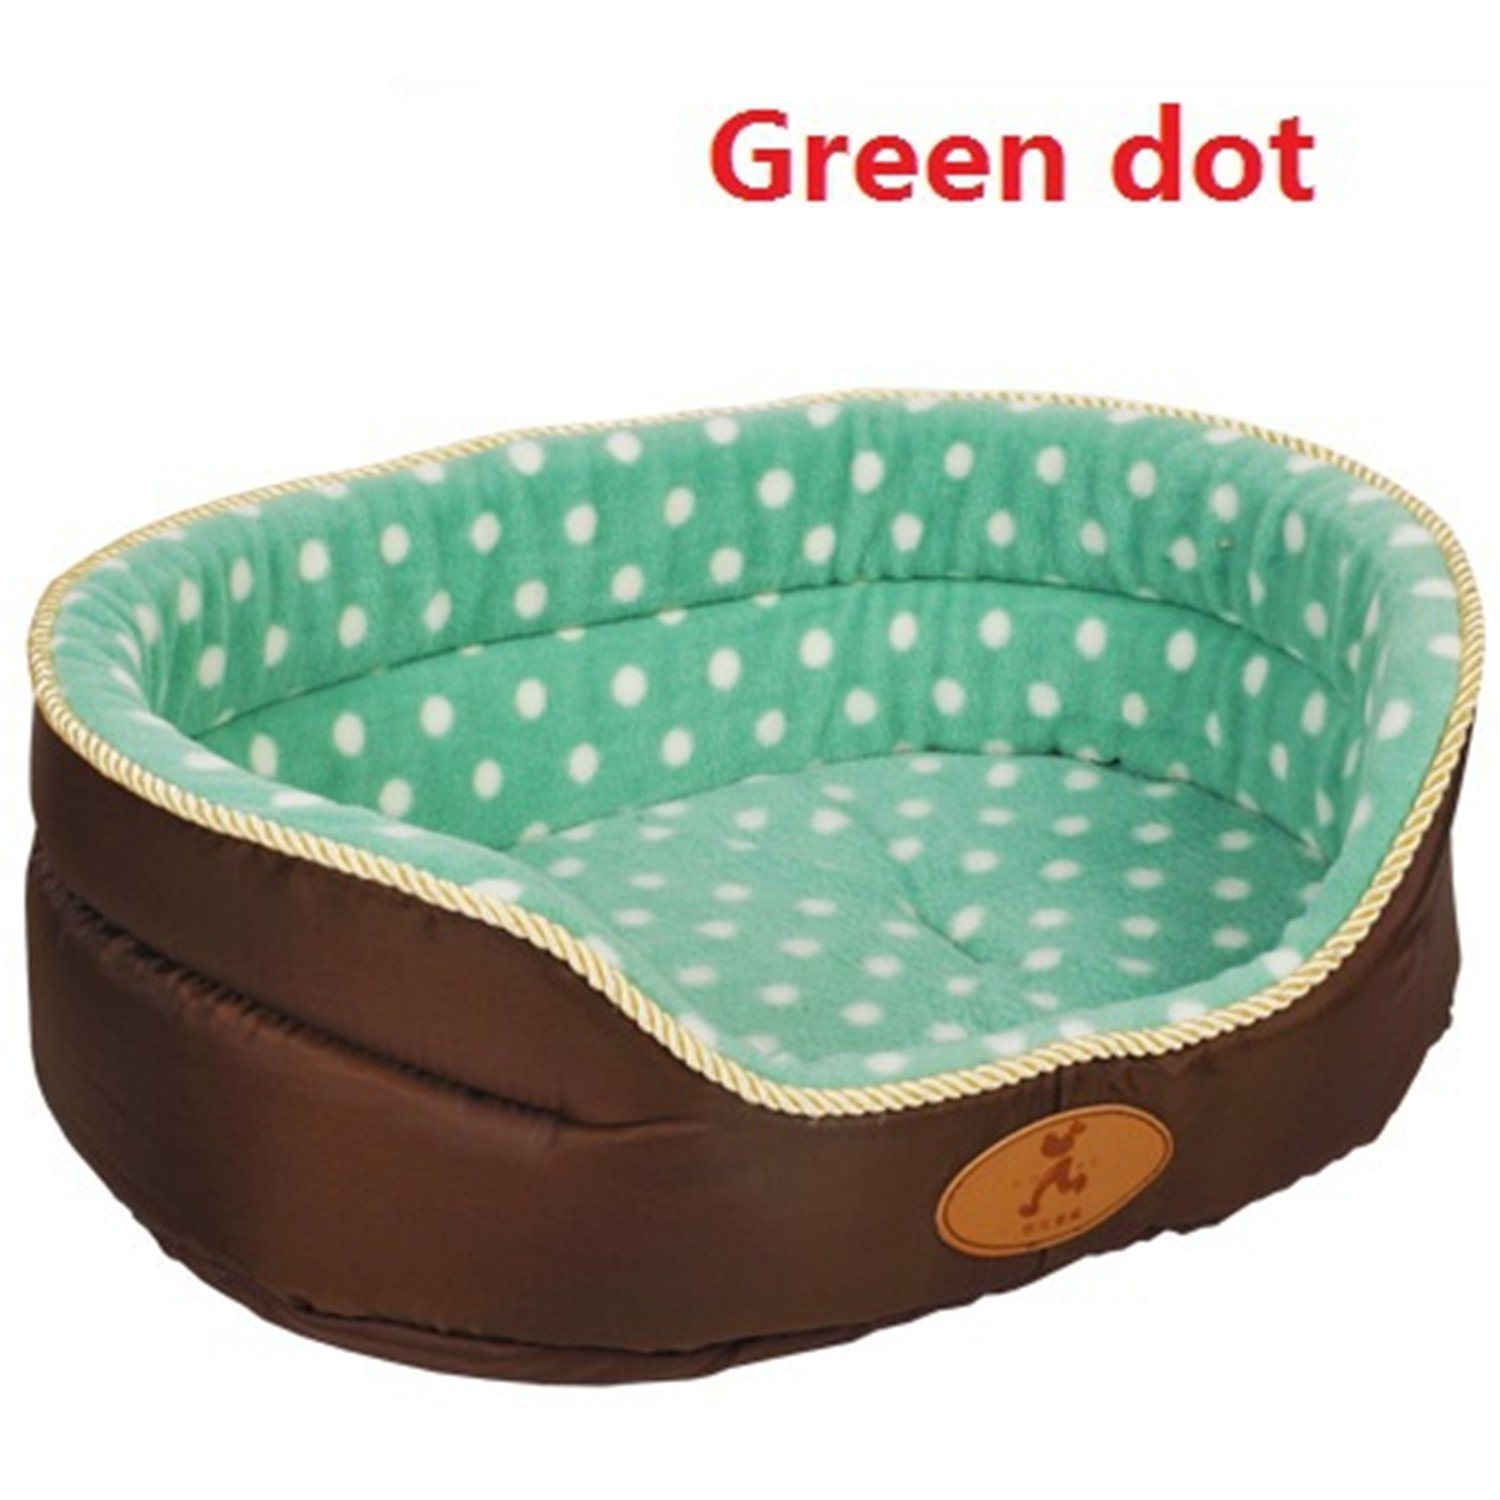 Green dot L green dot L Feroni Double Sided Available All Seasons Big Size Extra Large Dog Bed House Sofa Kennel Soft Fleece Pet Dog Cat Warm Bed s-XL Green dot L